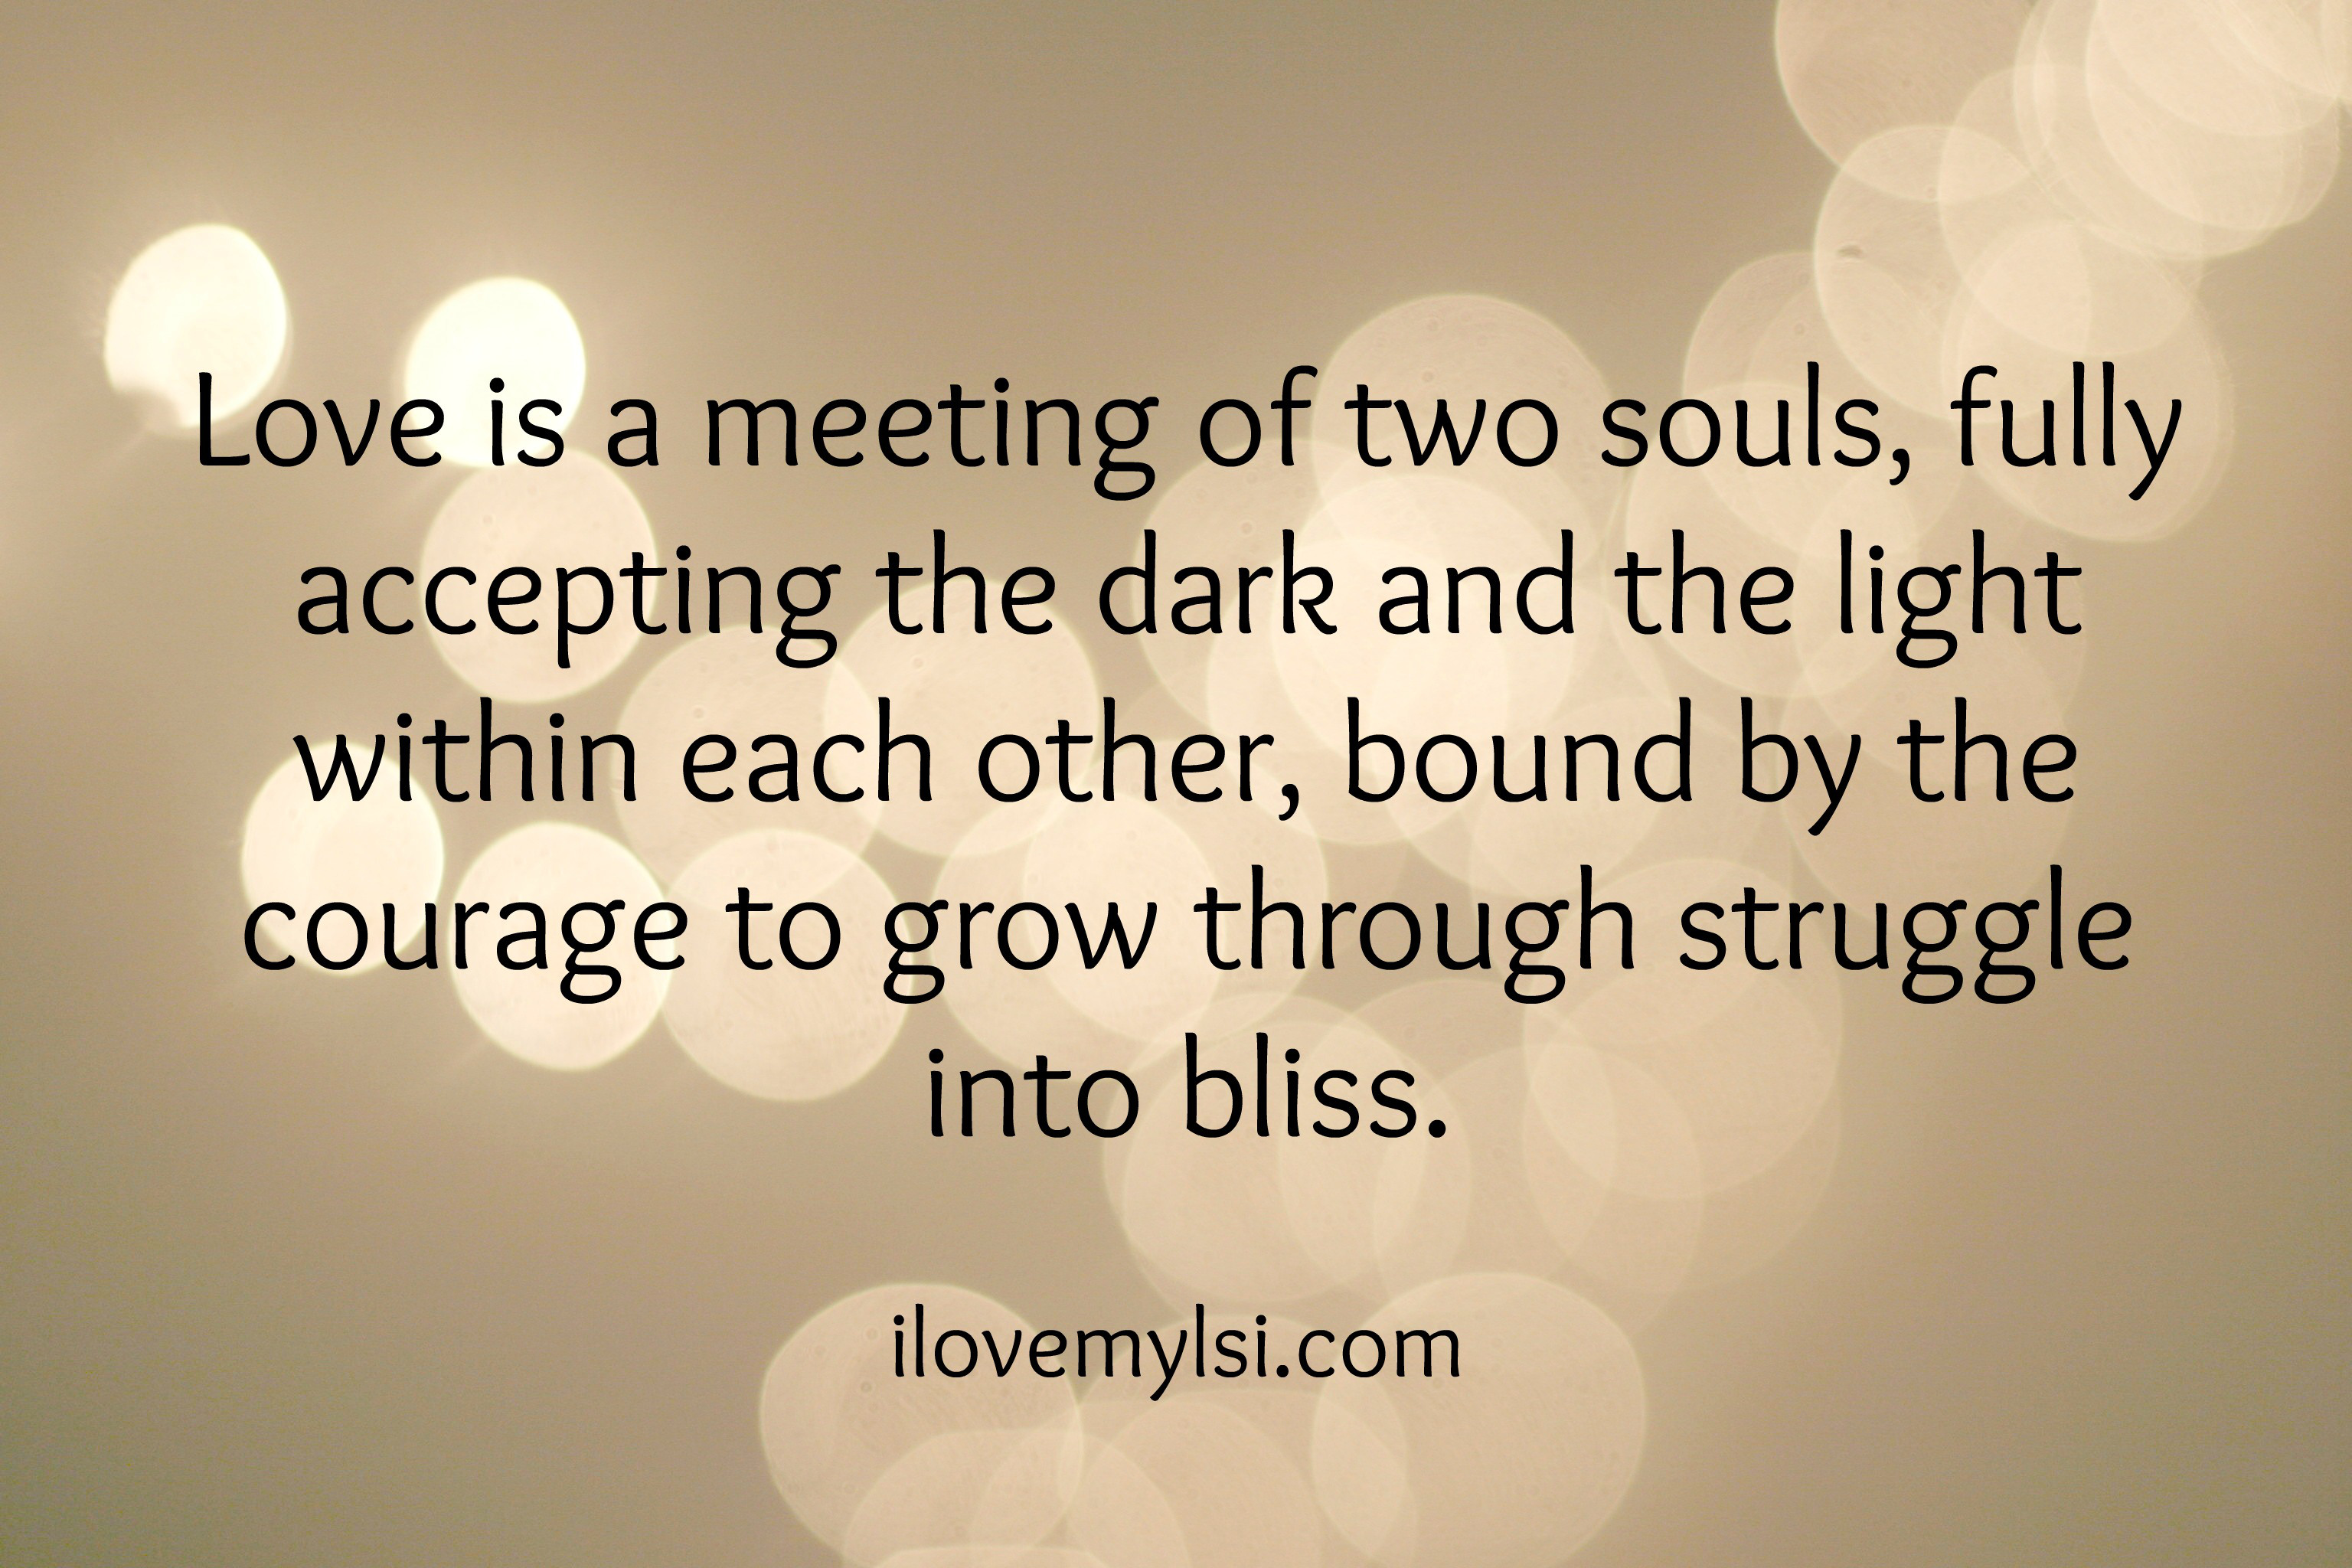 Heart And Soul Quotes Quotesgram: Love Quotes Soul. QuotesGram